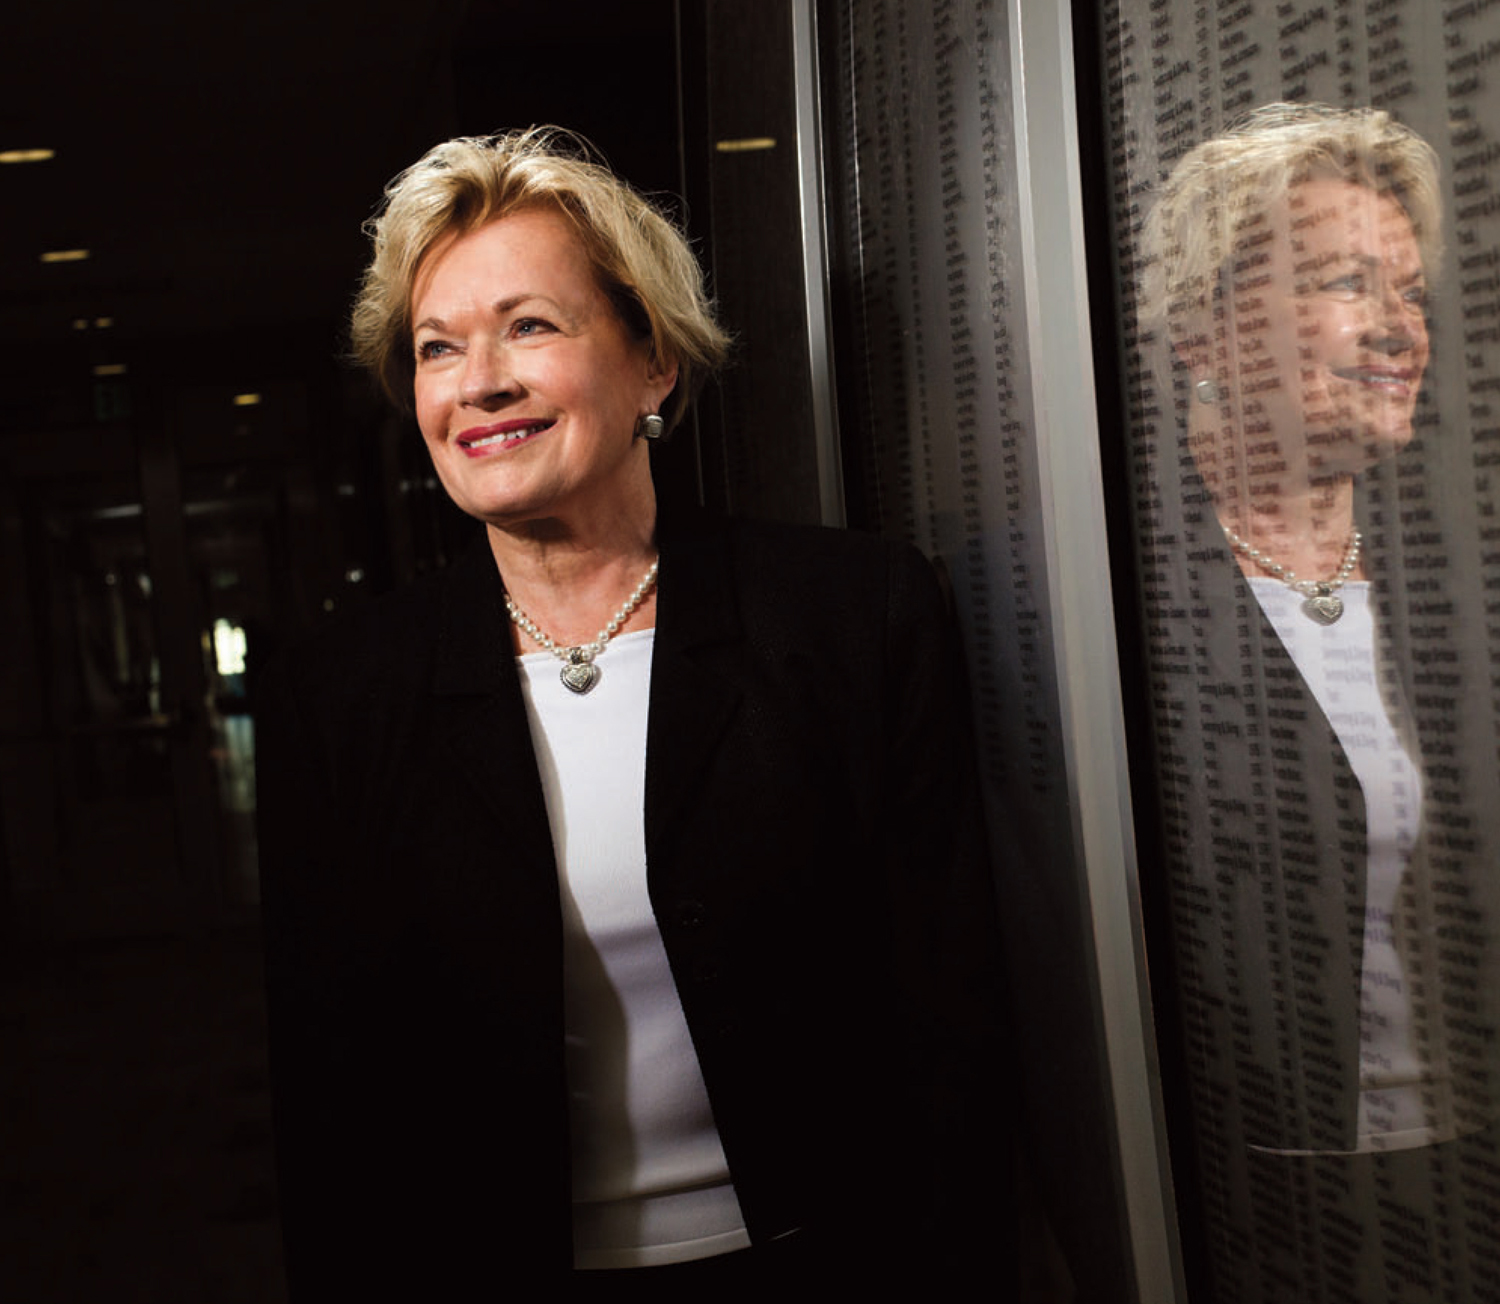 Barbara Hedges, who created a new era for women's sports at USC during her first 18-year term, has returned to the university to help female student-athletes. (Photo/Two Point Pictures)